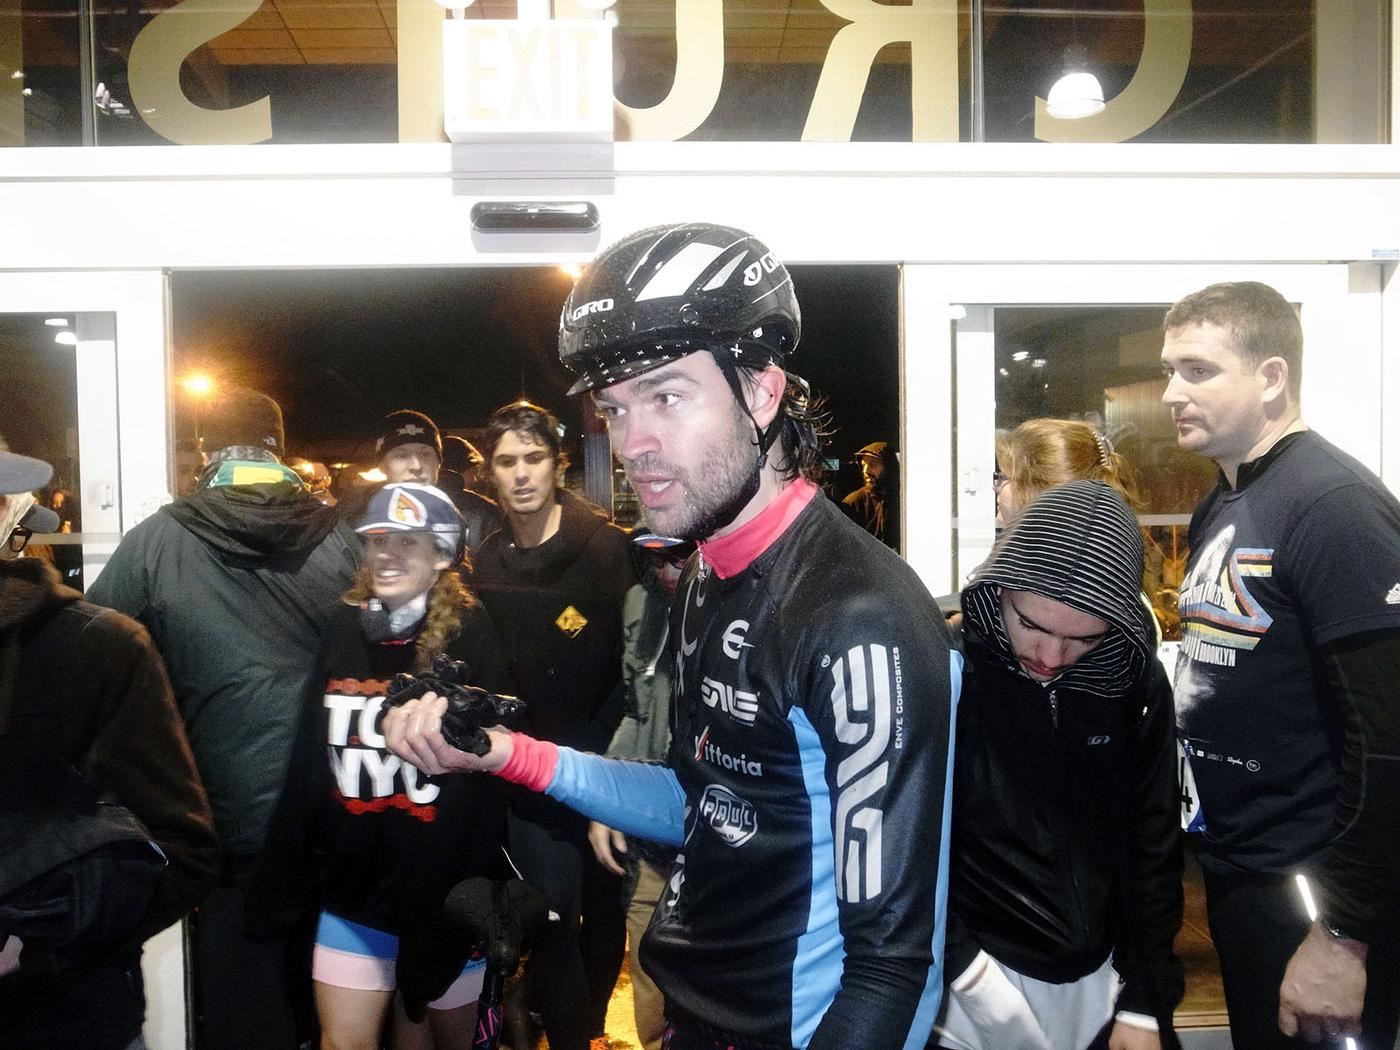 The 2014 Red Hook Crit by Dan Chabanov